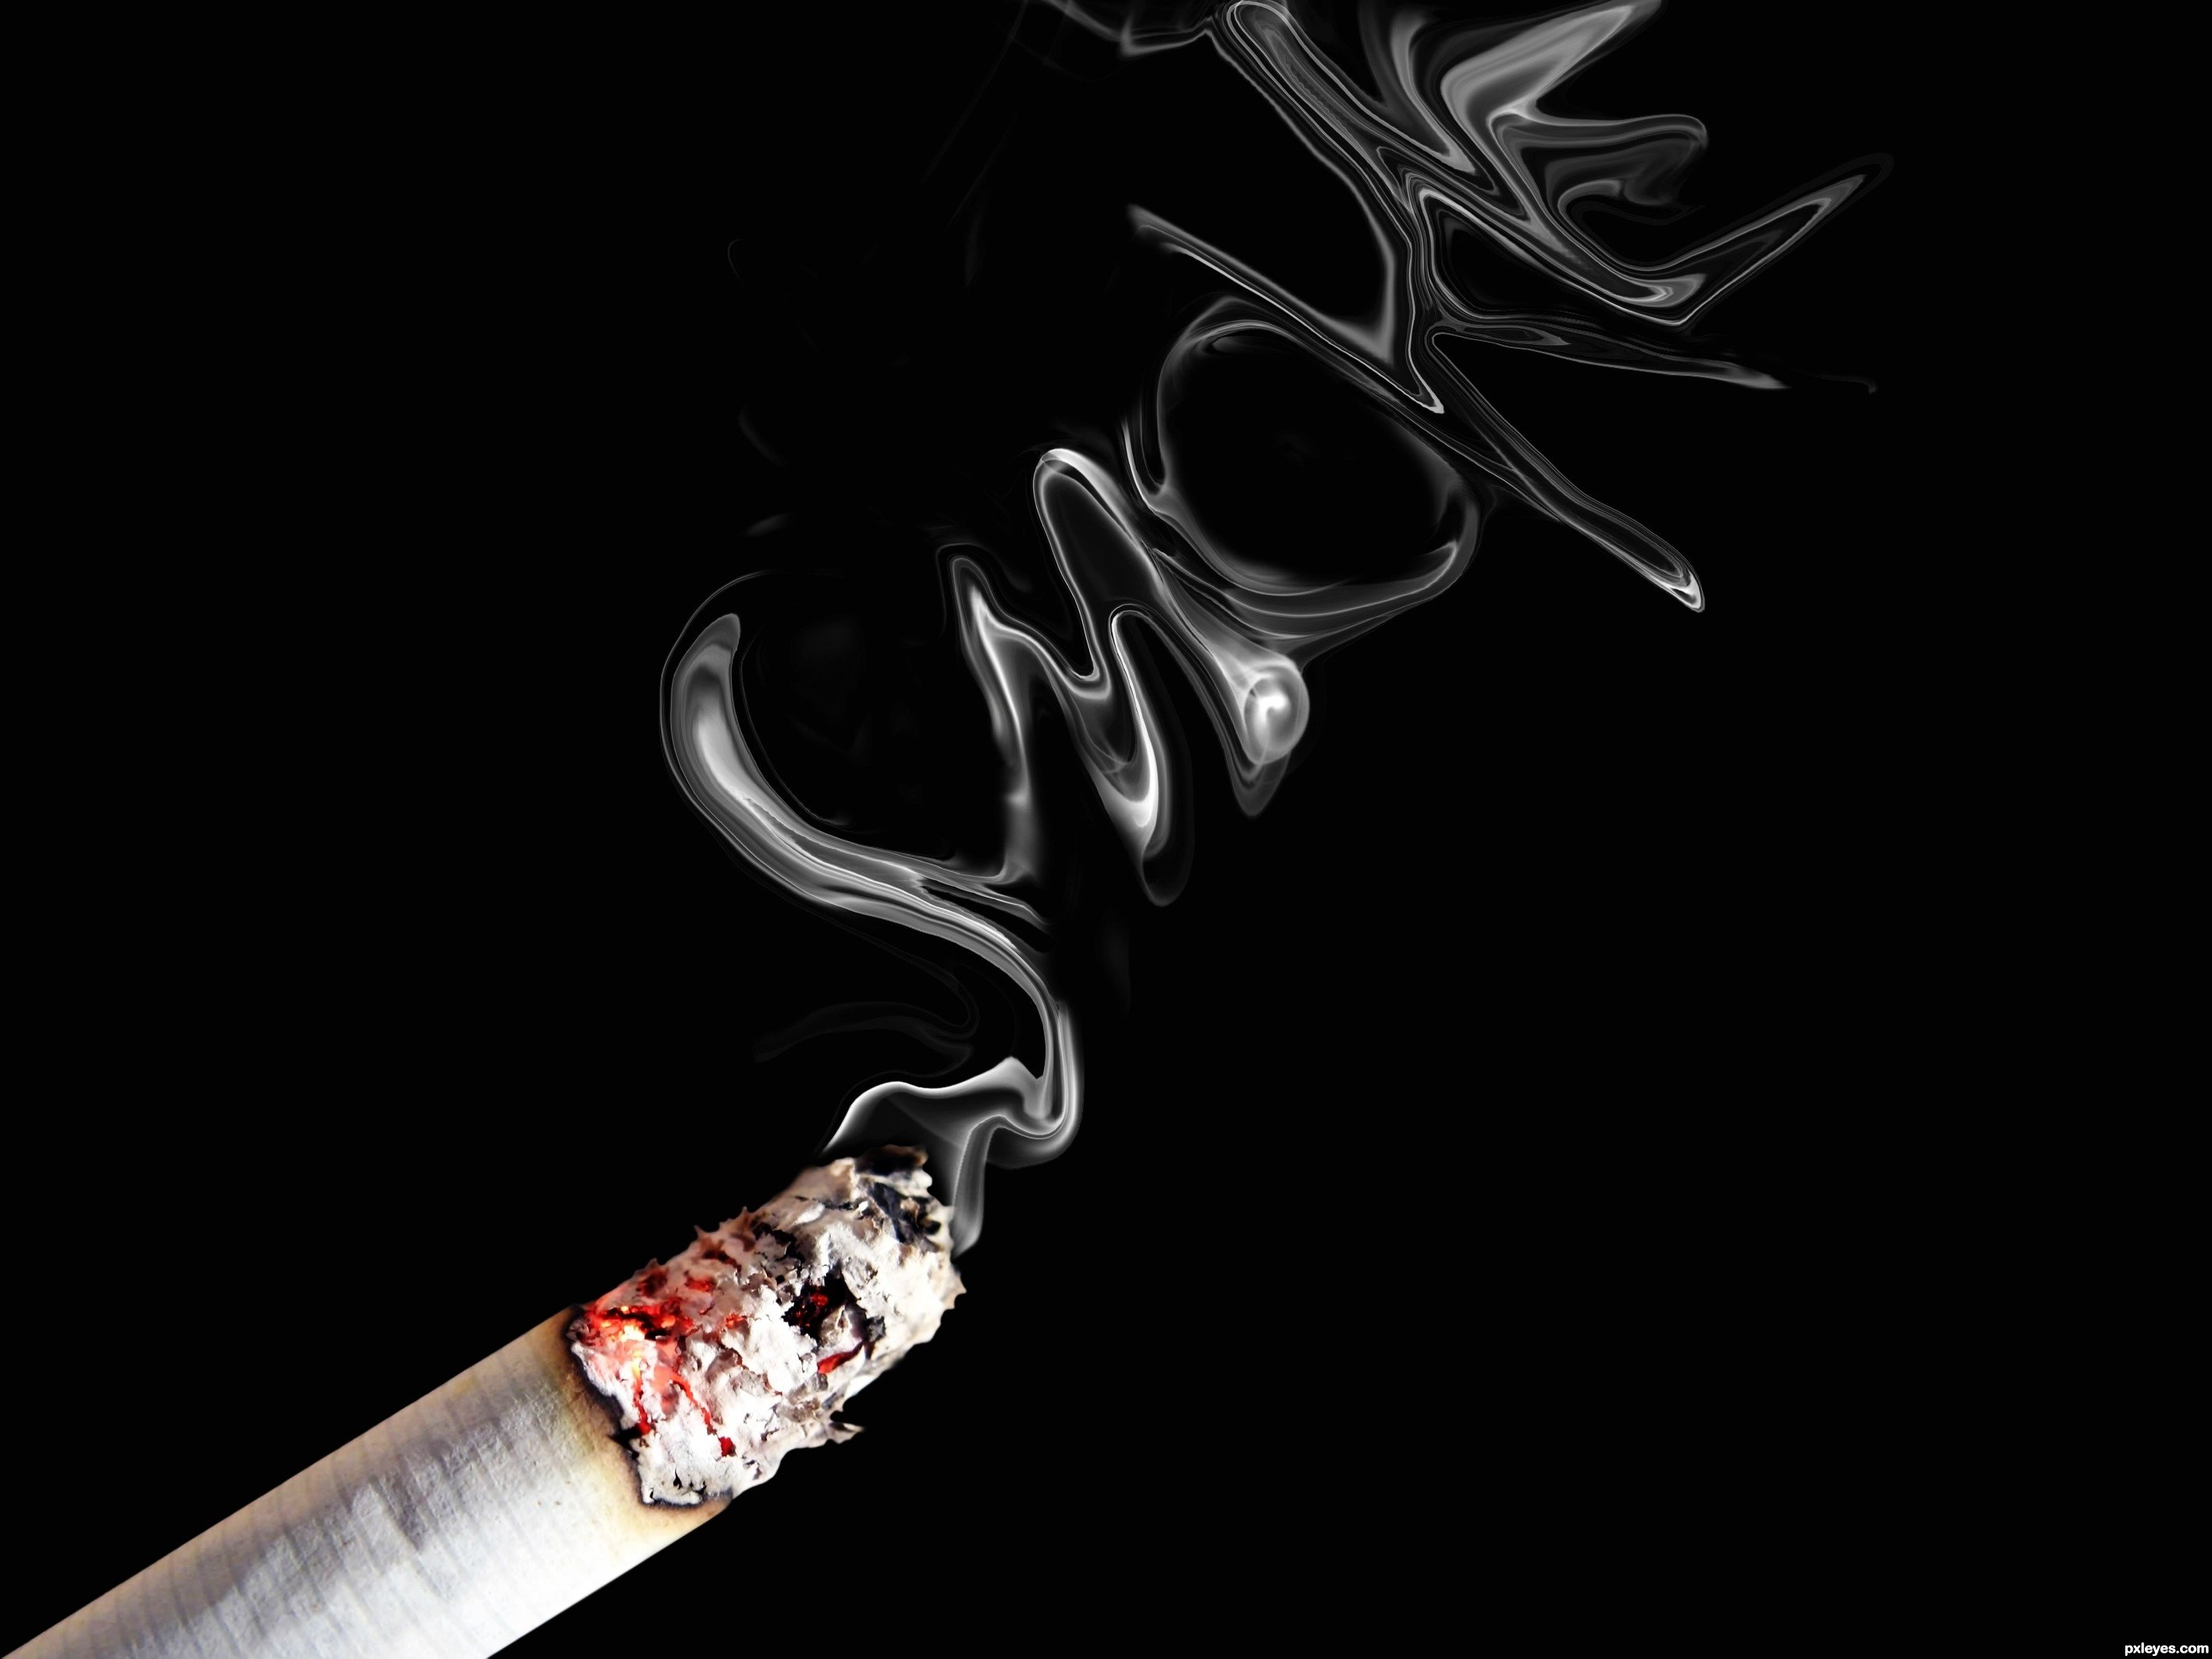 cigarette smoke hd images images hd download